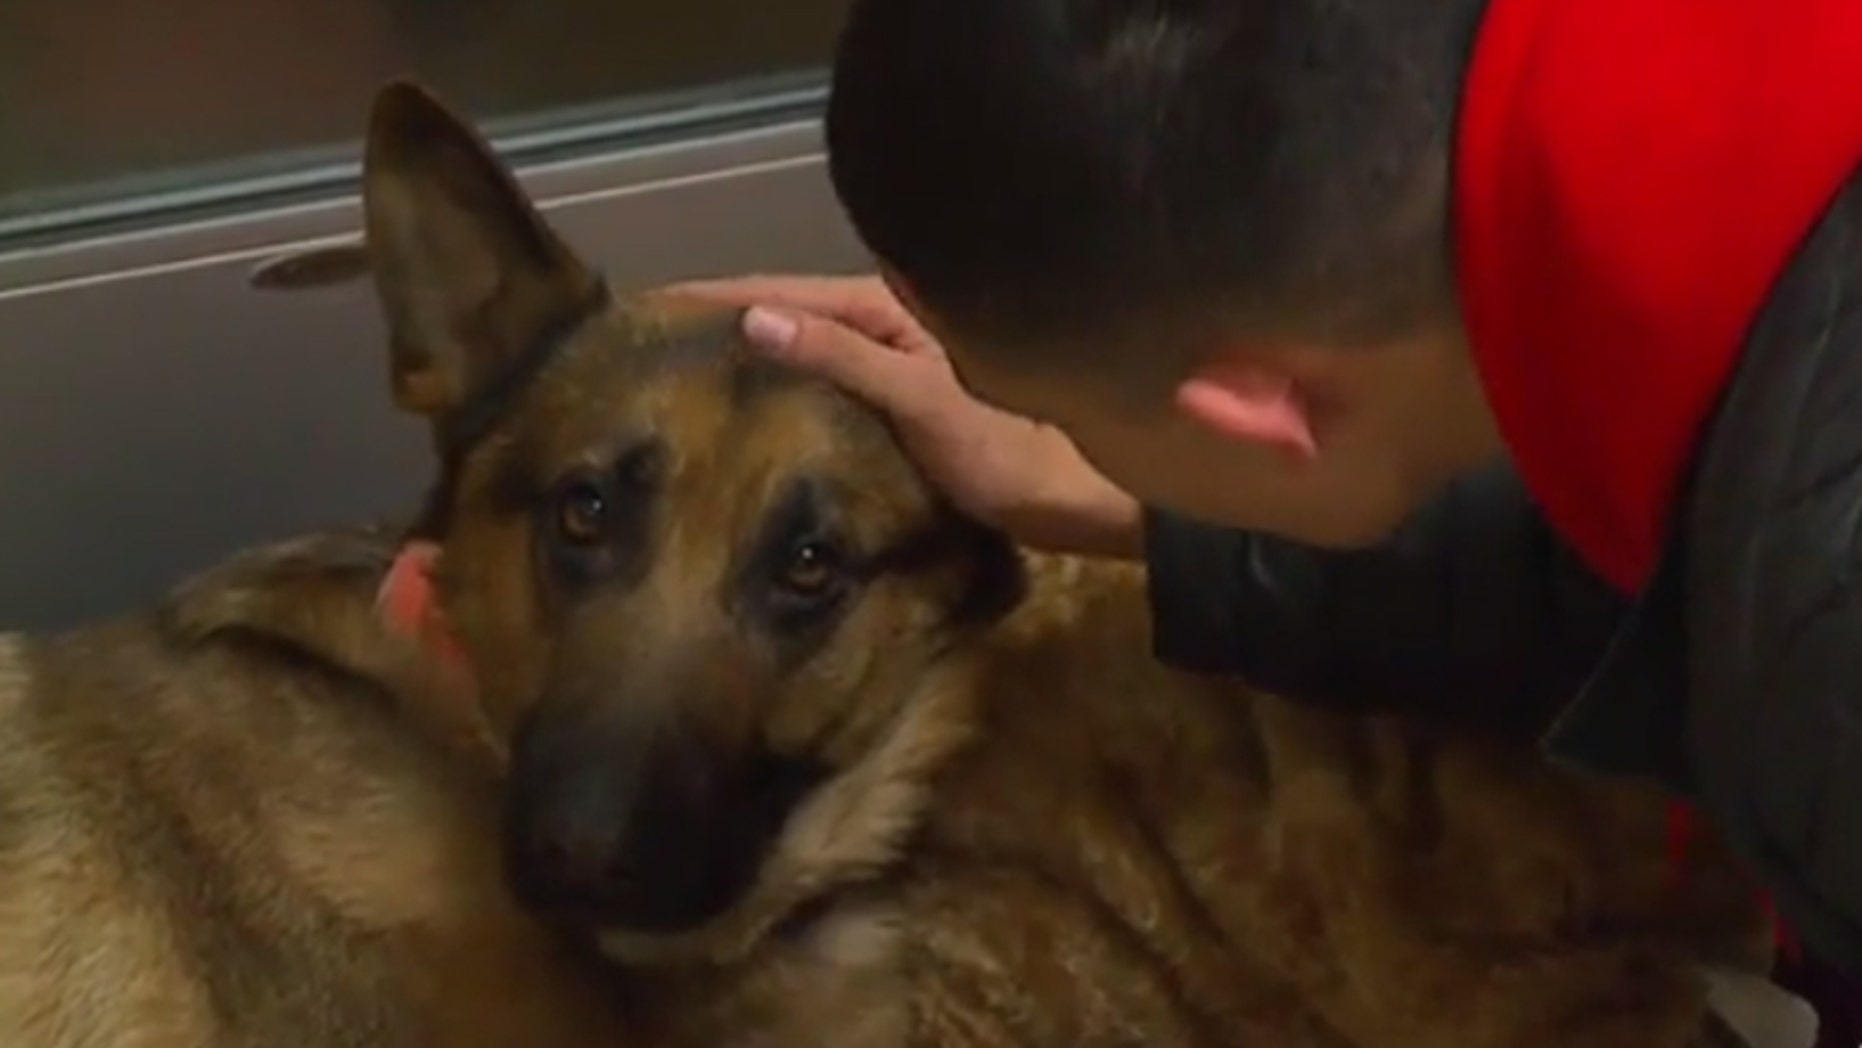 Javier Mercado says his dog, Rex, came to his aid during a home invasion on Wednesday.